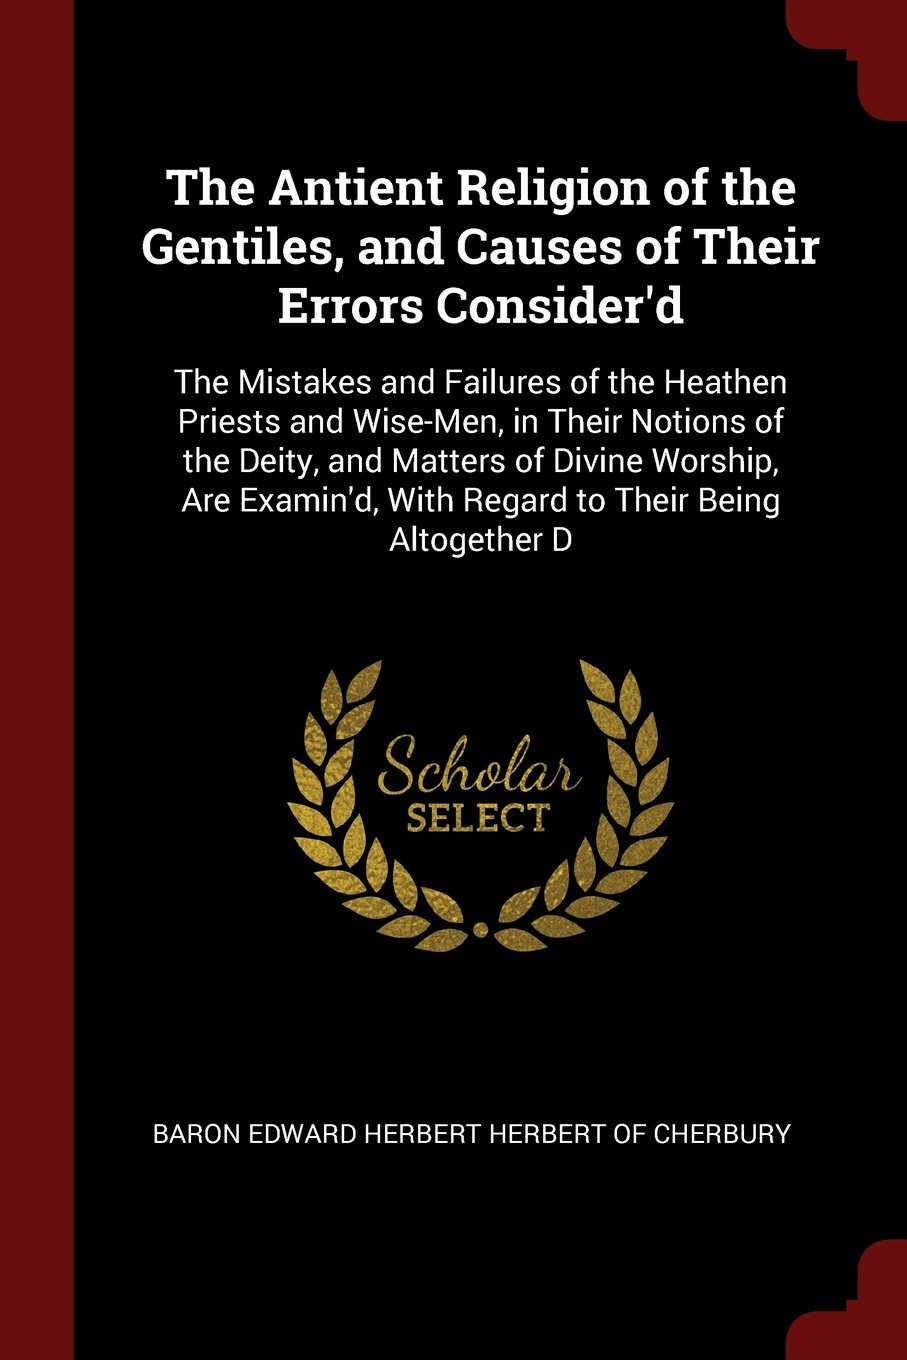 Download The Antient Religion of the Gentiles, and Causes of Their Errors Consider'd: The Mistakes and Failures of the Heathen Priests and Wise-Men, in Their With Regard to Their Being Altogether D pdf epub